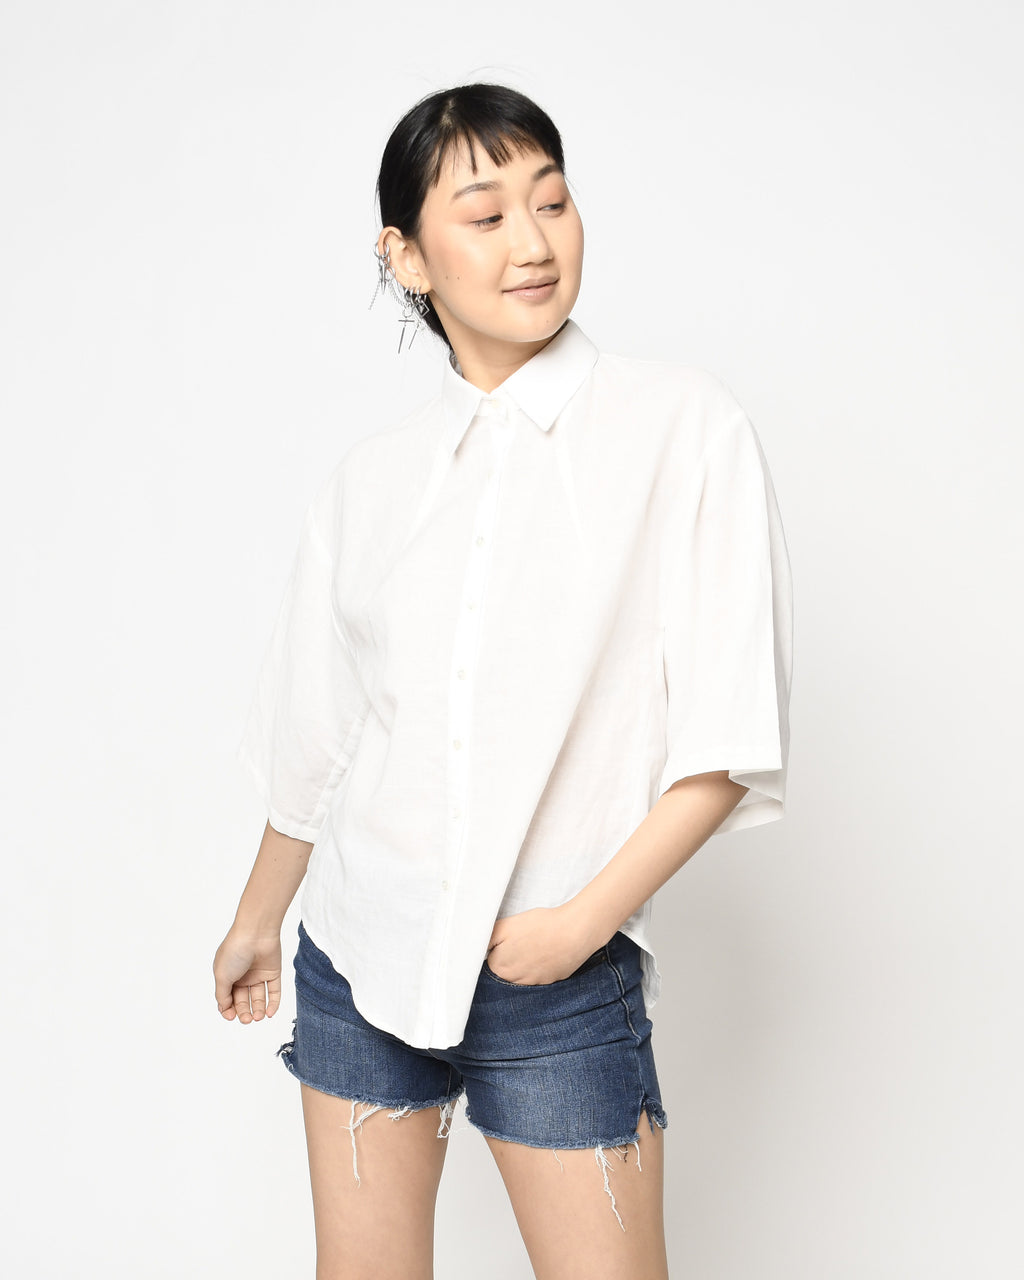 CT18738 - LINEN CAMP SHIRT - tops - shirts - This linen shirt is an essential for any wardrobe.Designed in lightweight yet luxurious linen, this boxy shirt button downs the front and features 3 quarter length sleeves. Add 1 line break Stylist Tip: Dress up with jeans or wear over a bathing suit for a chic cover up.